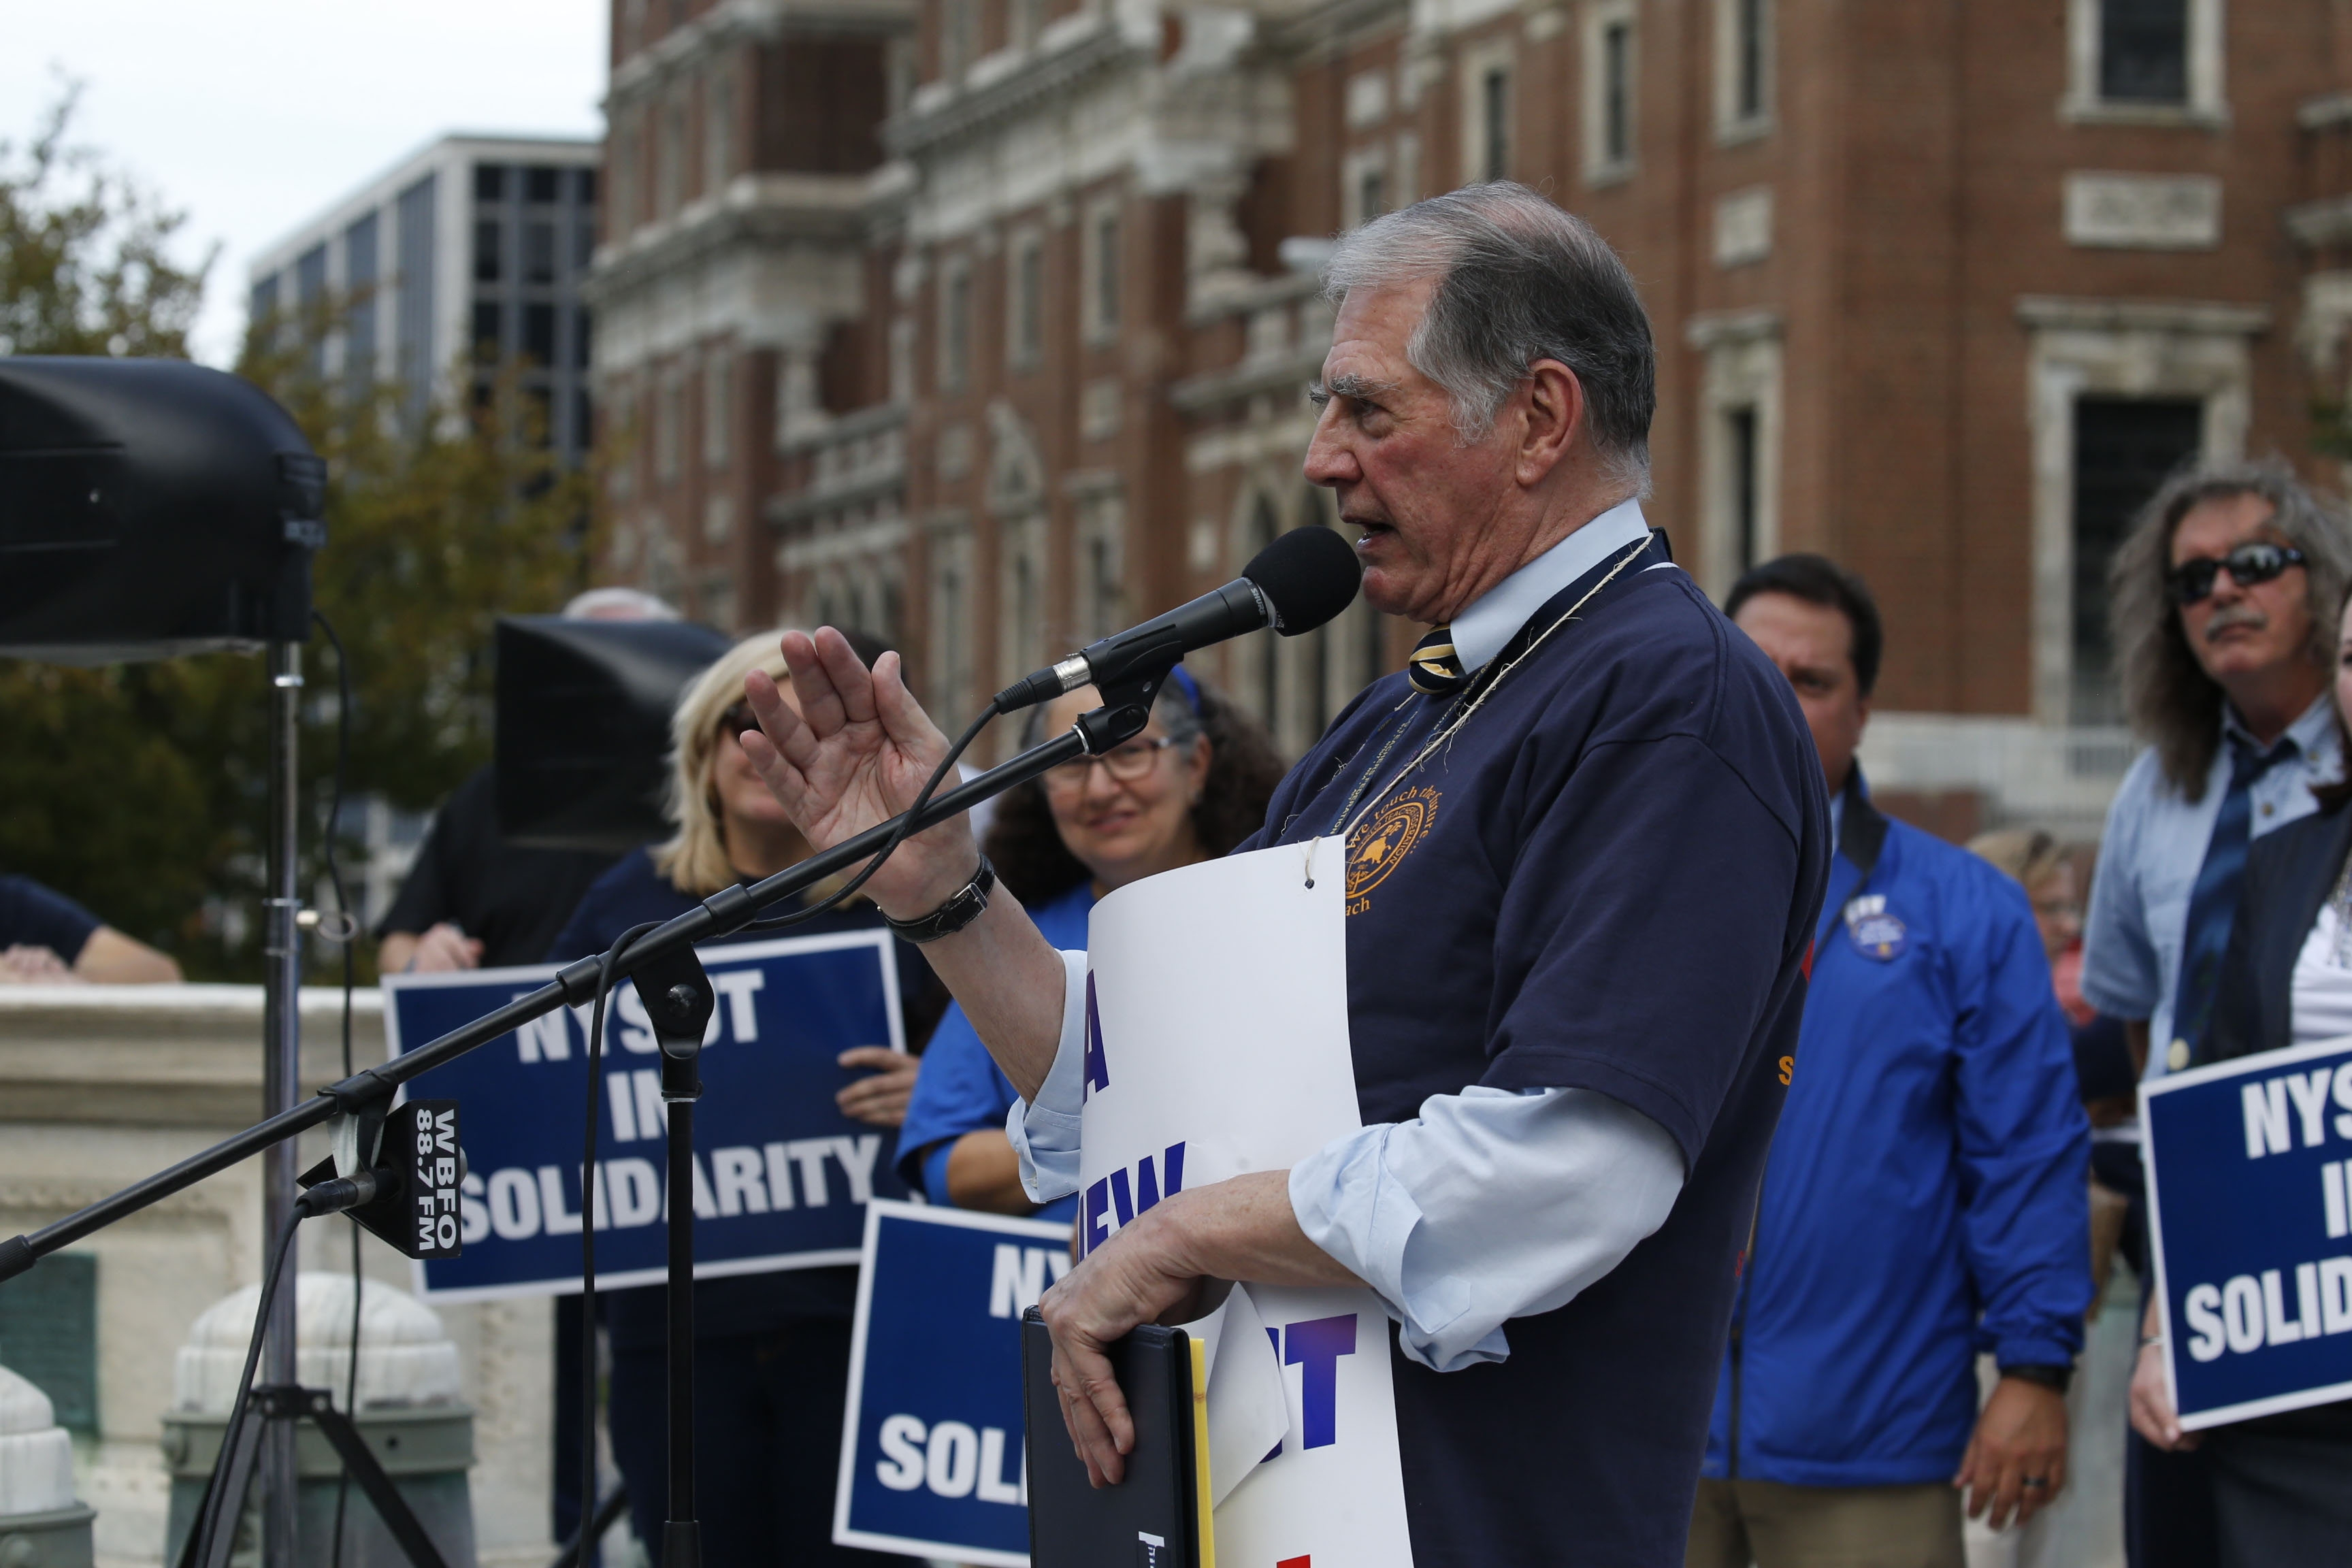 Buffalo Teachers Federation President Philip Rumore speaks at rally in Niagara Square. The union meets Oct. 17. (Robert Kirkham/Buffalo News)